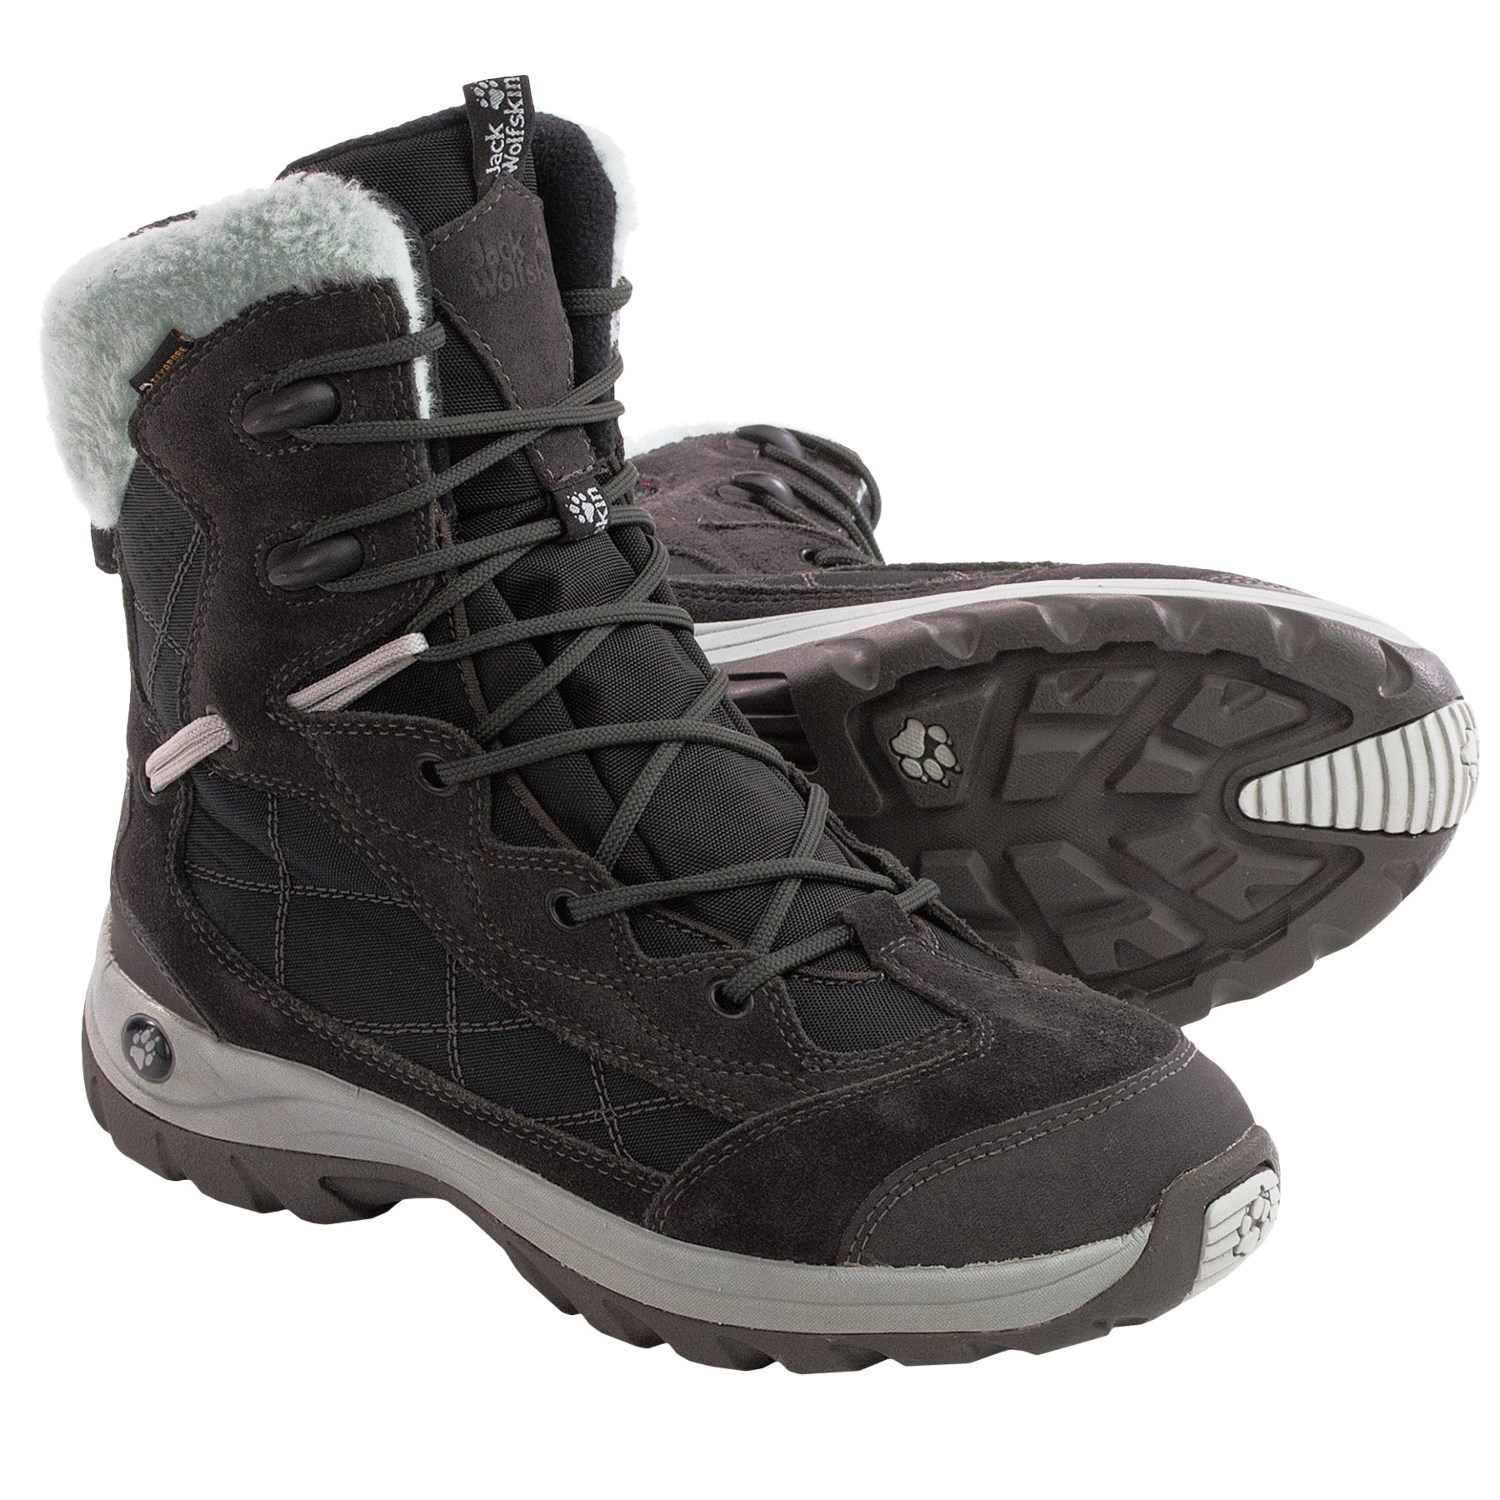 jack wolfskin icy park texapore snow boots for women save 74. Black Bedroom Furniture Sets. Home Design Ideas